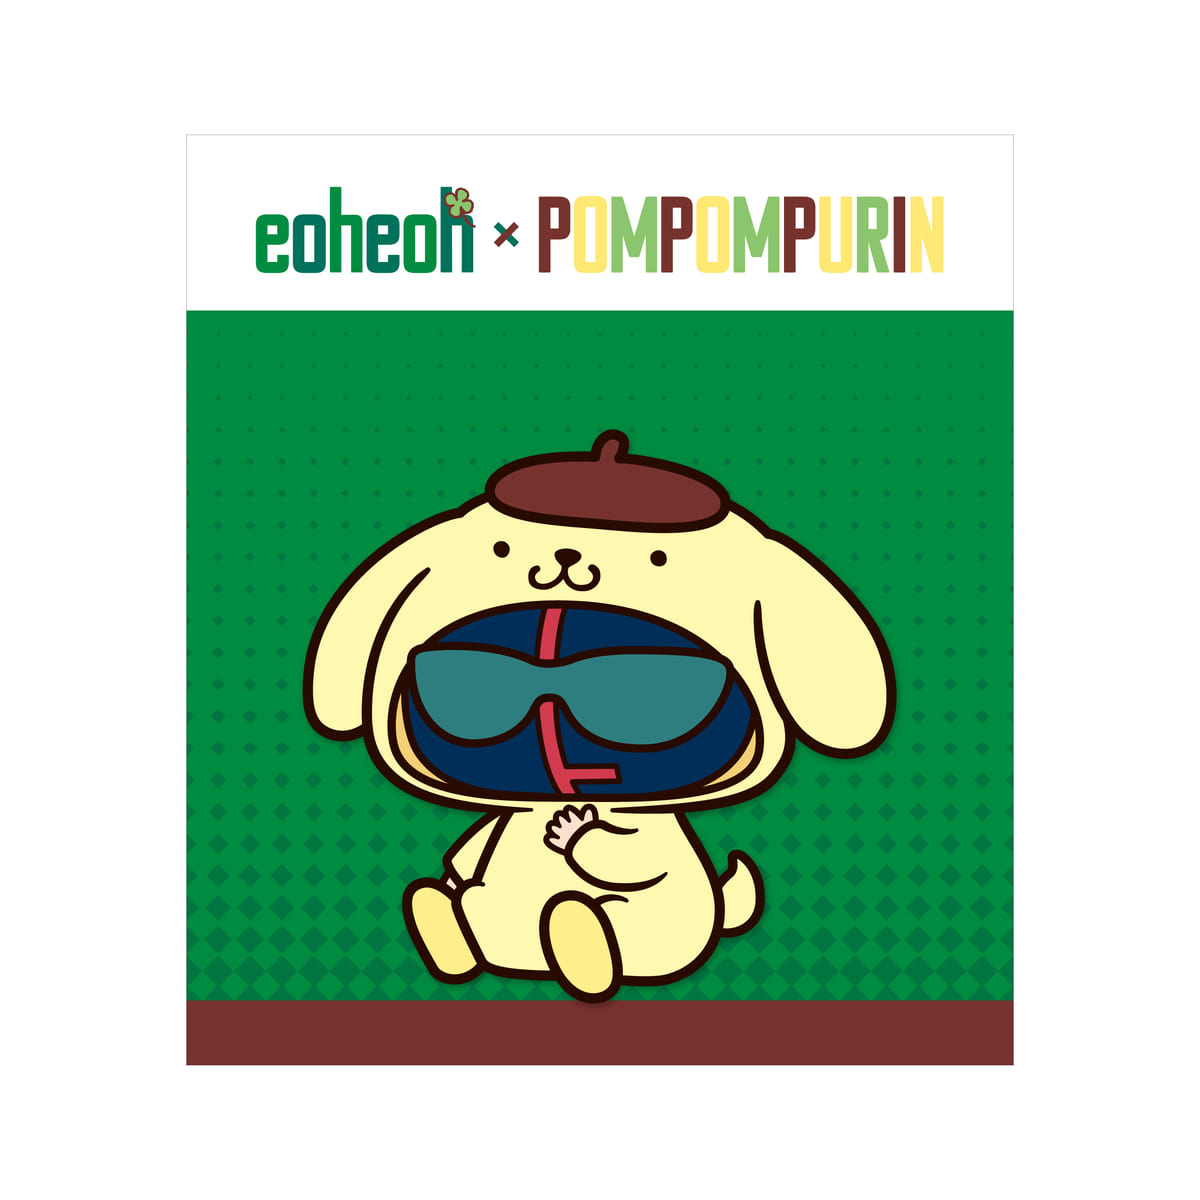 4eoheoh×ポムポムプリン